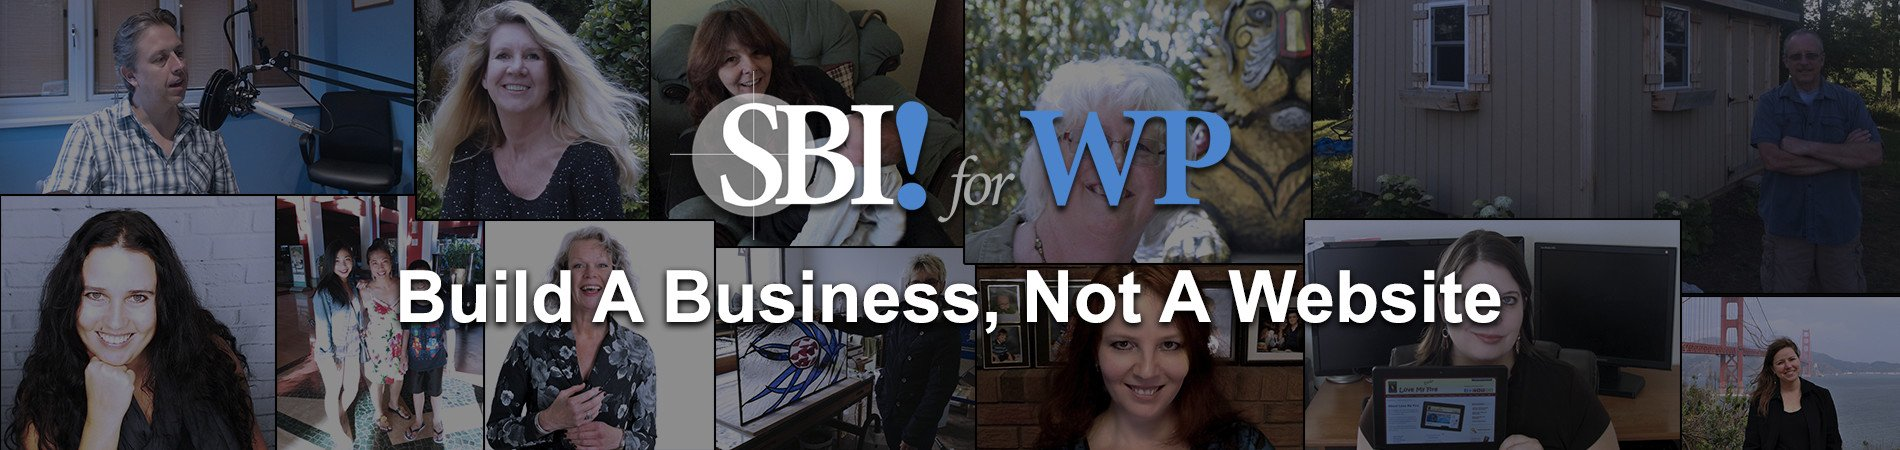 Everyday people build extraordinary web businesses with SBI! for WP. Every day.